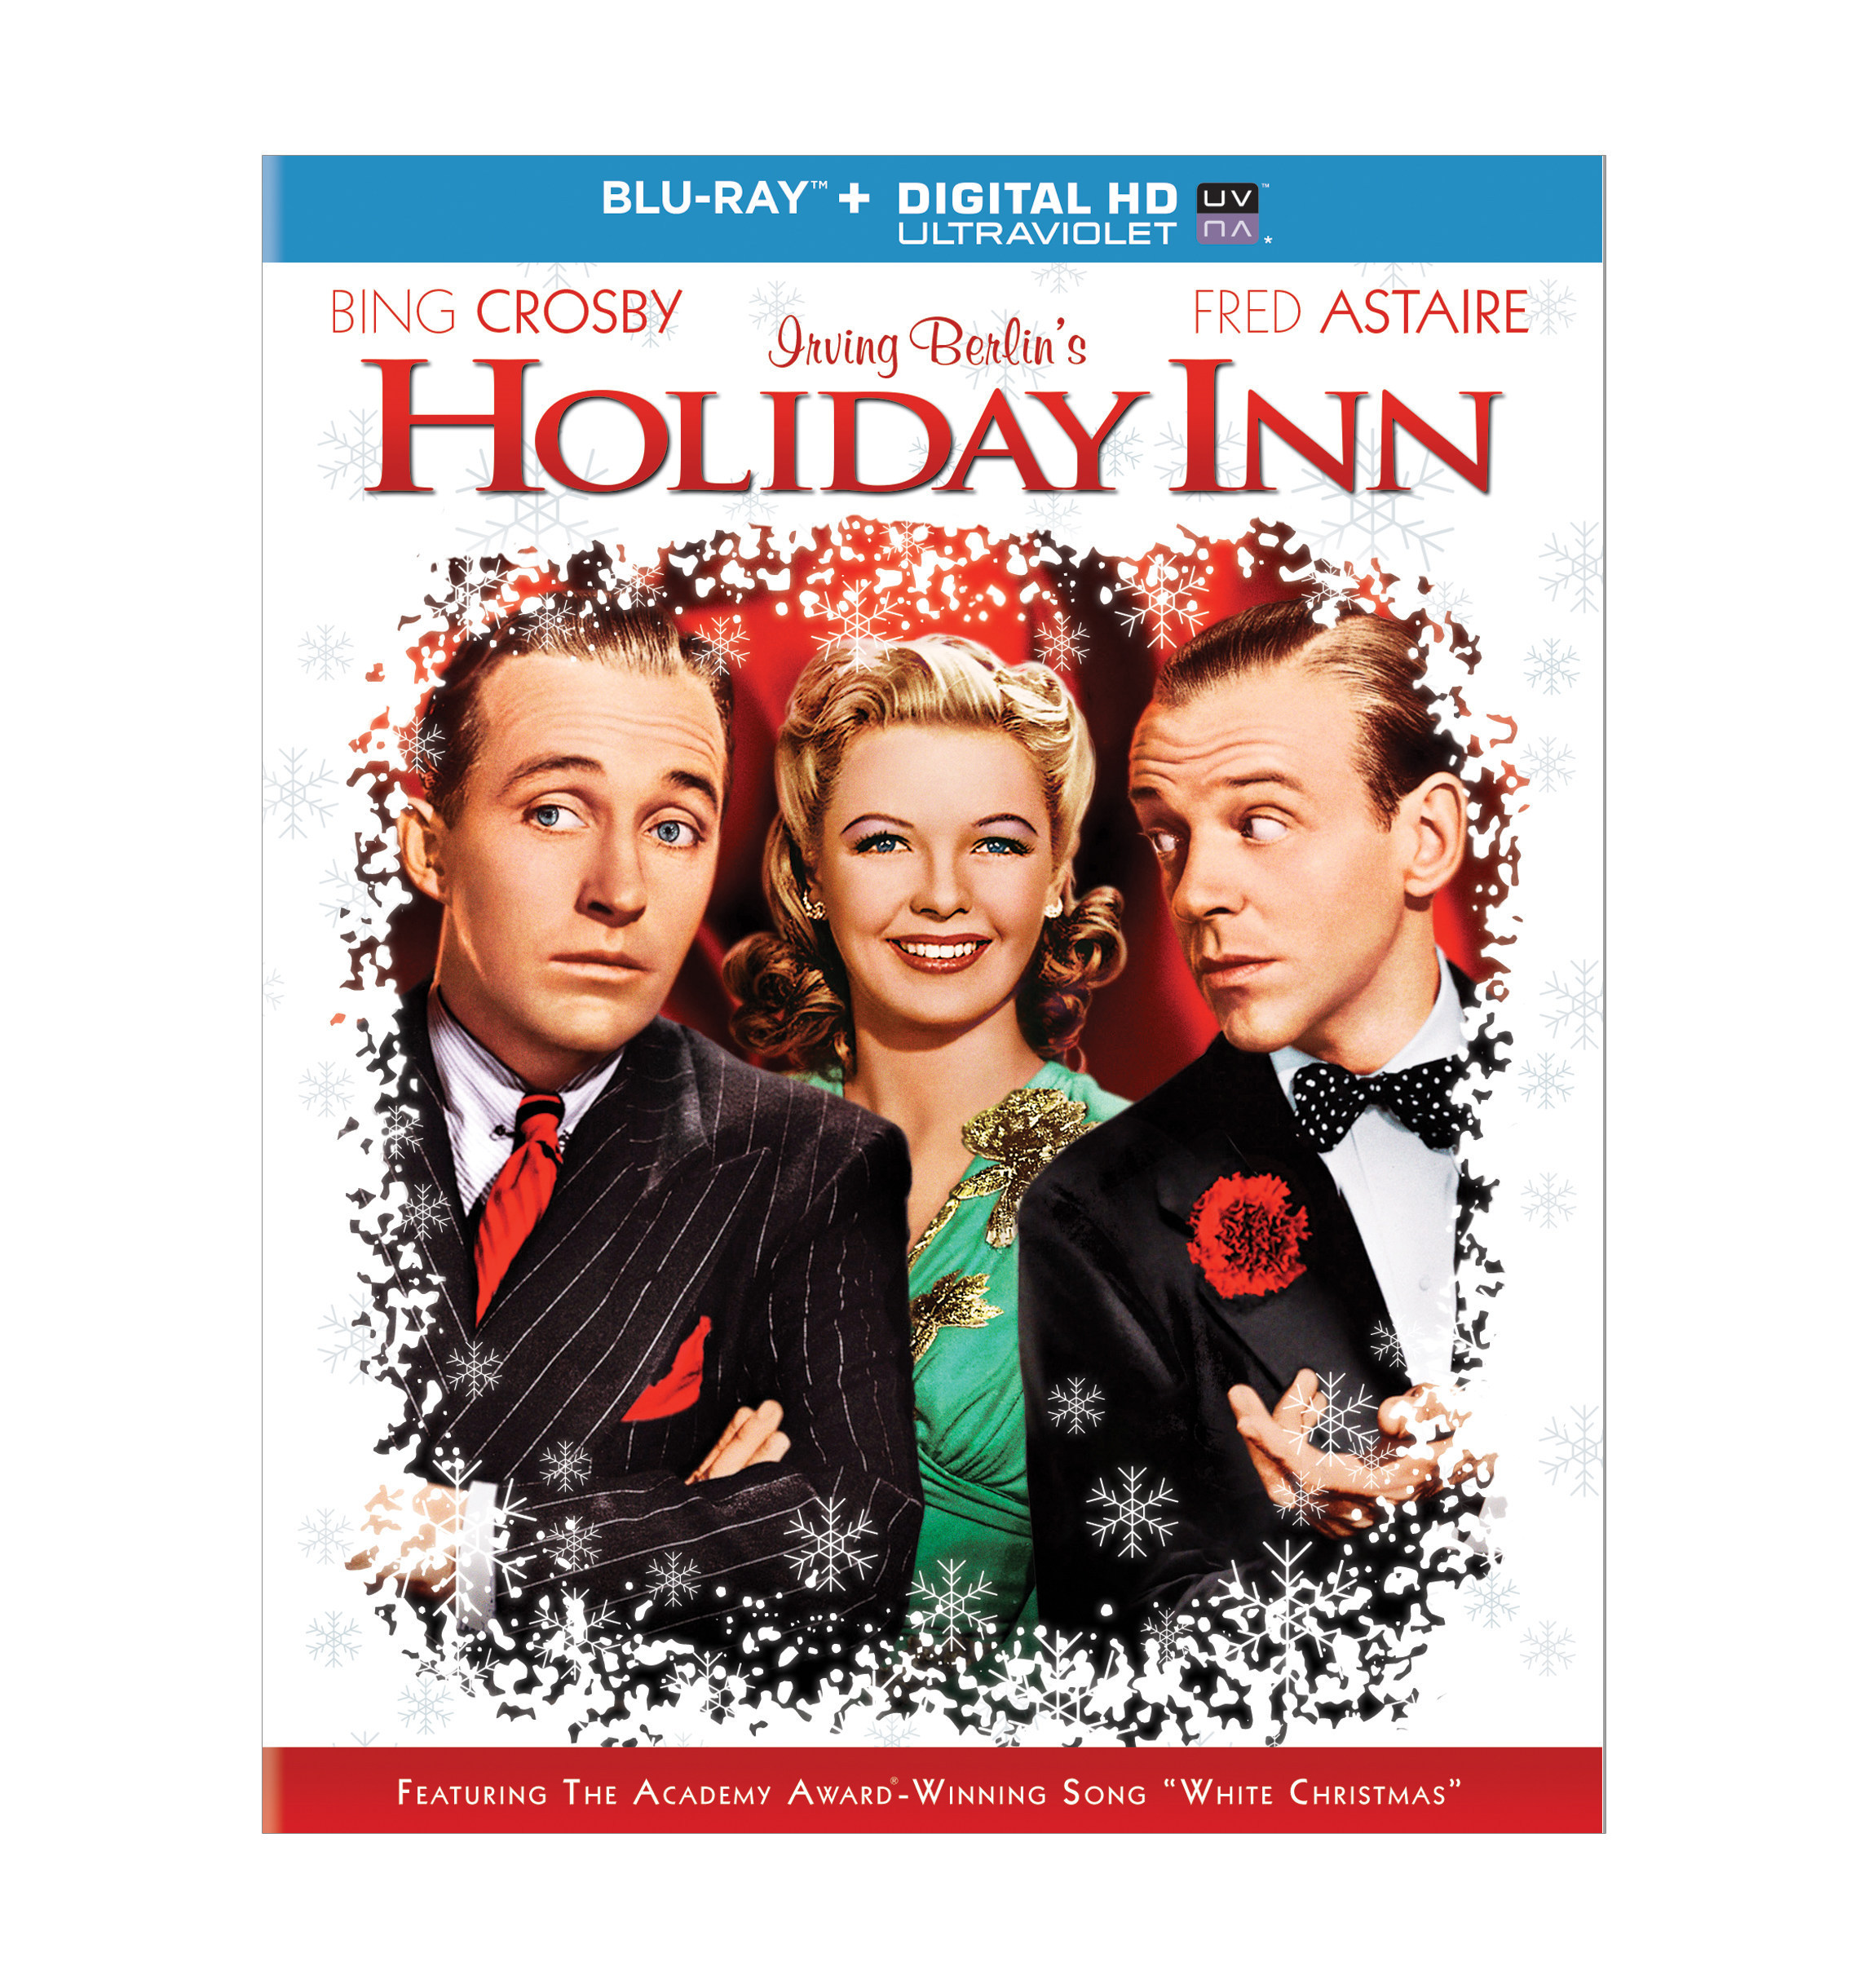 Timeless Holiday Classic HOLIDAY INN Coming to Blu-ray & Digital HD